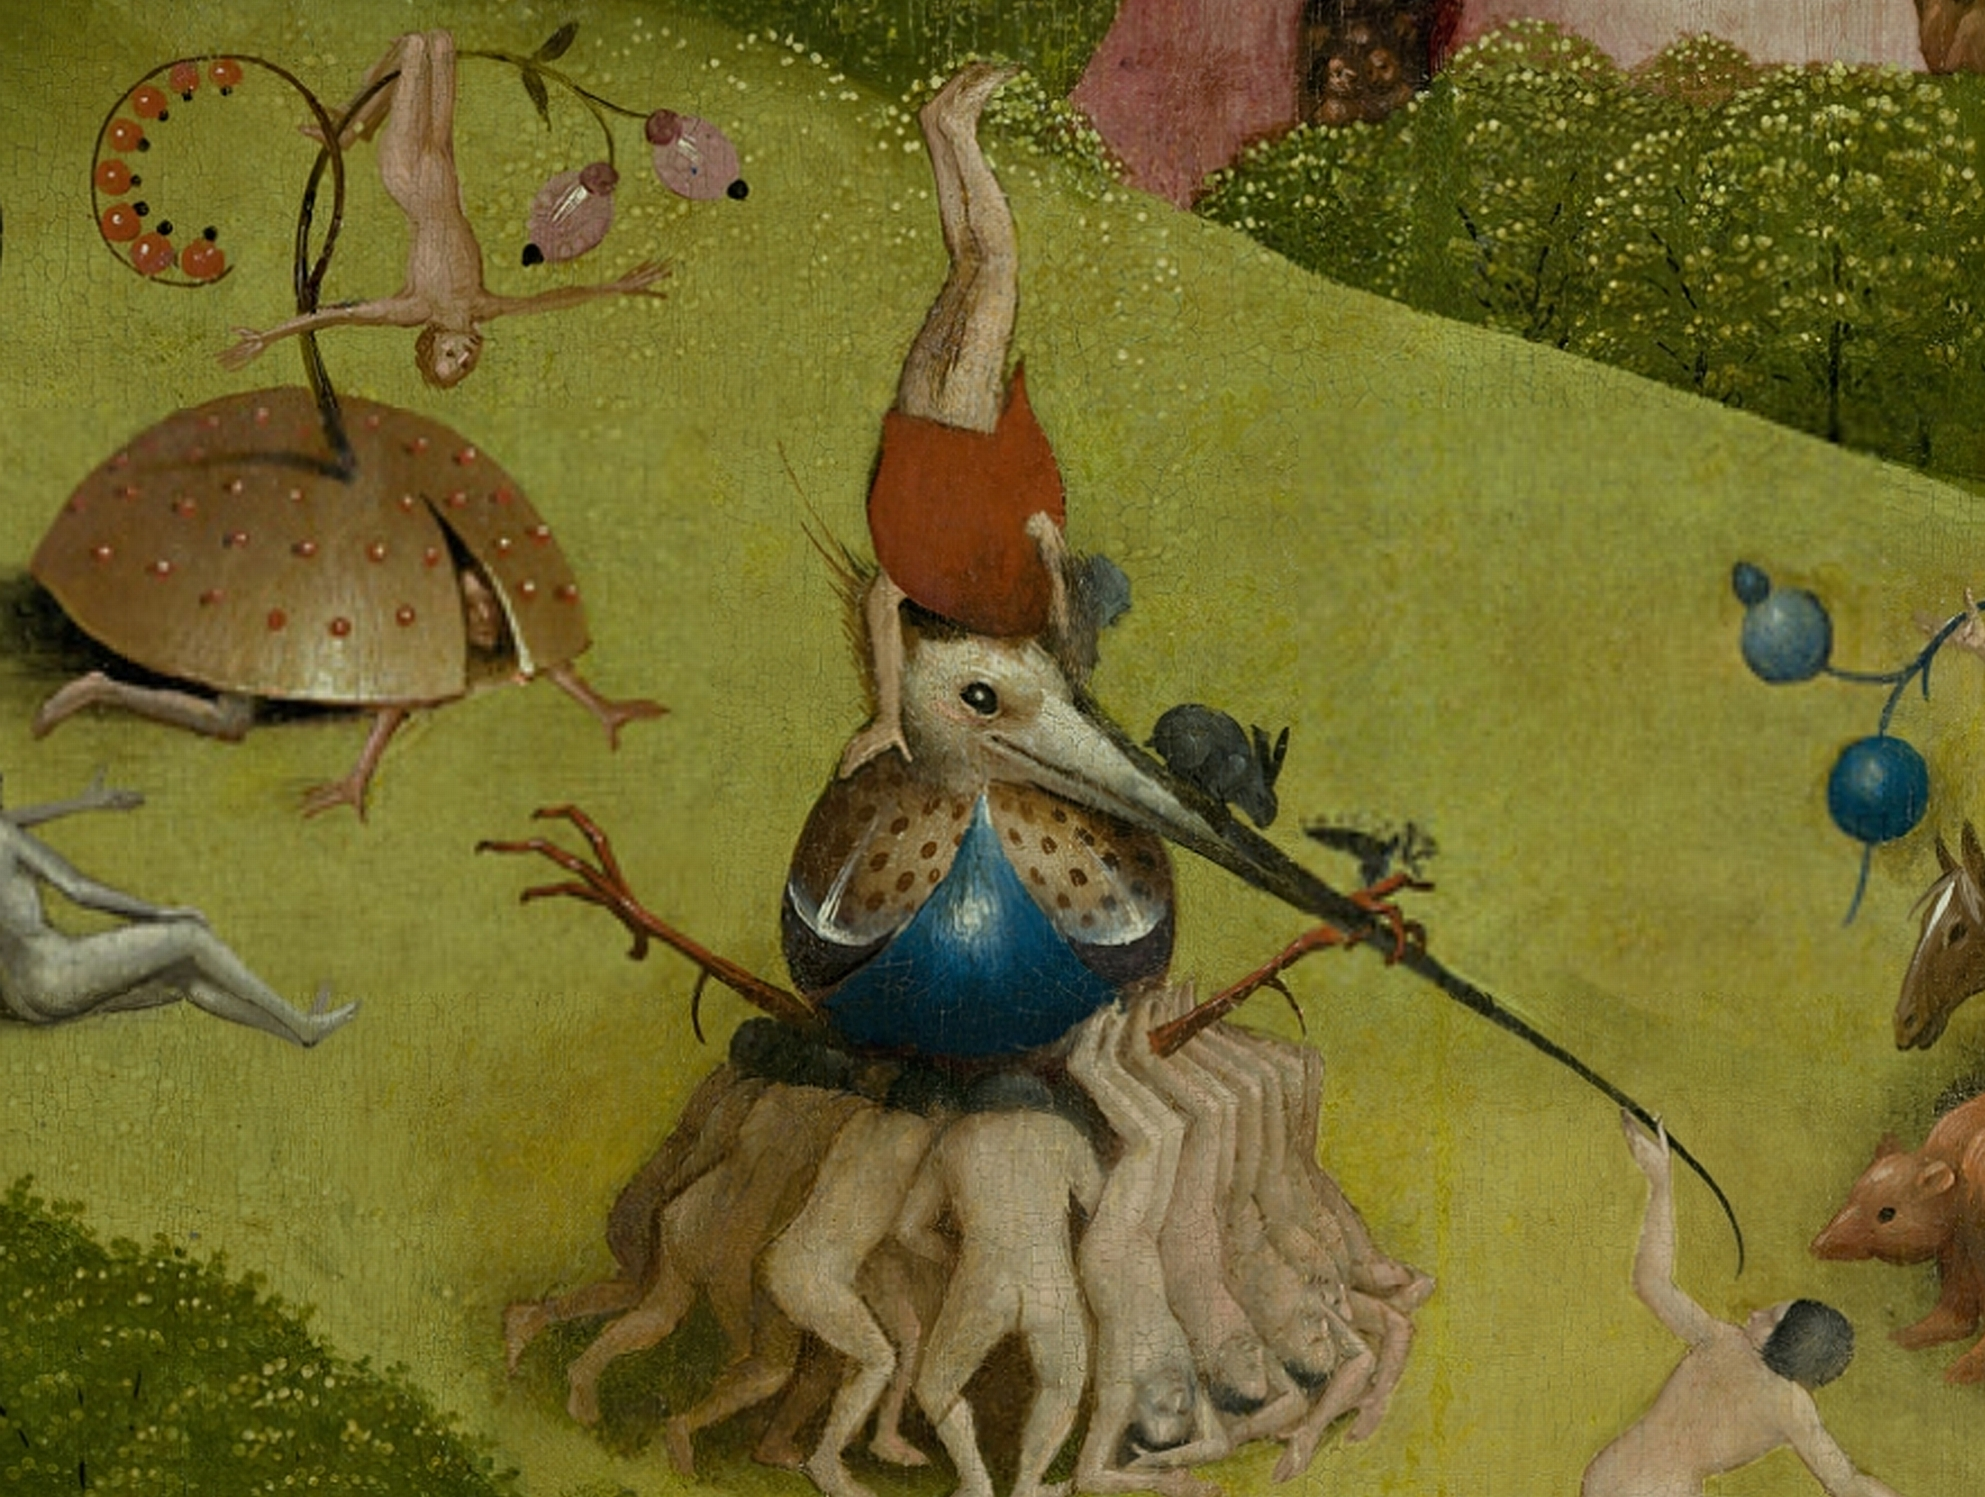 File bosch hieronymus the garden of earthly delights central panel detail men upside down - Bosch pittore il giardino delle delizie ...